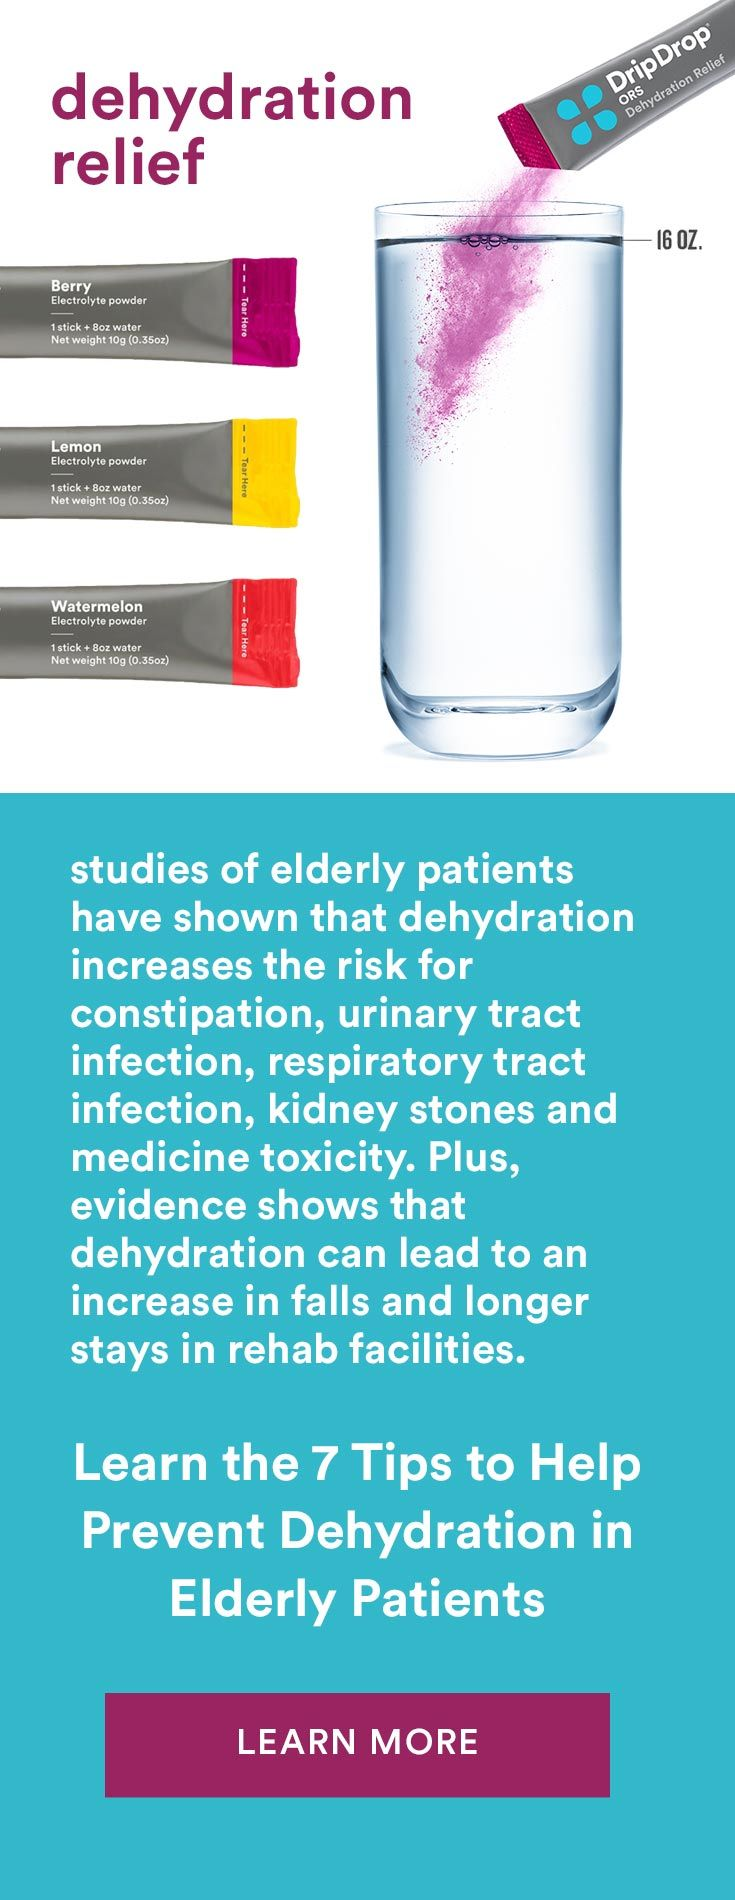 Dehydration relief for seniors and elderly how to get